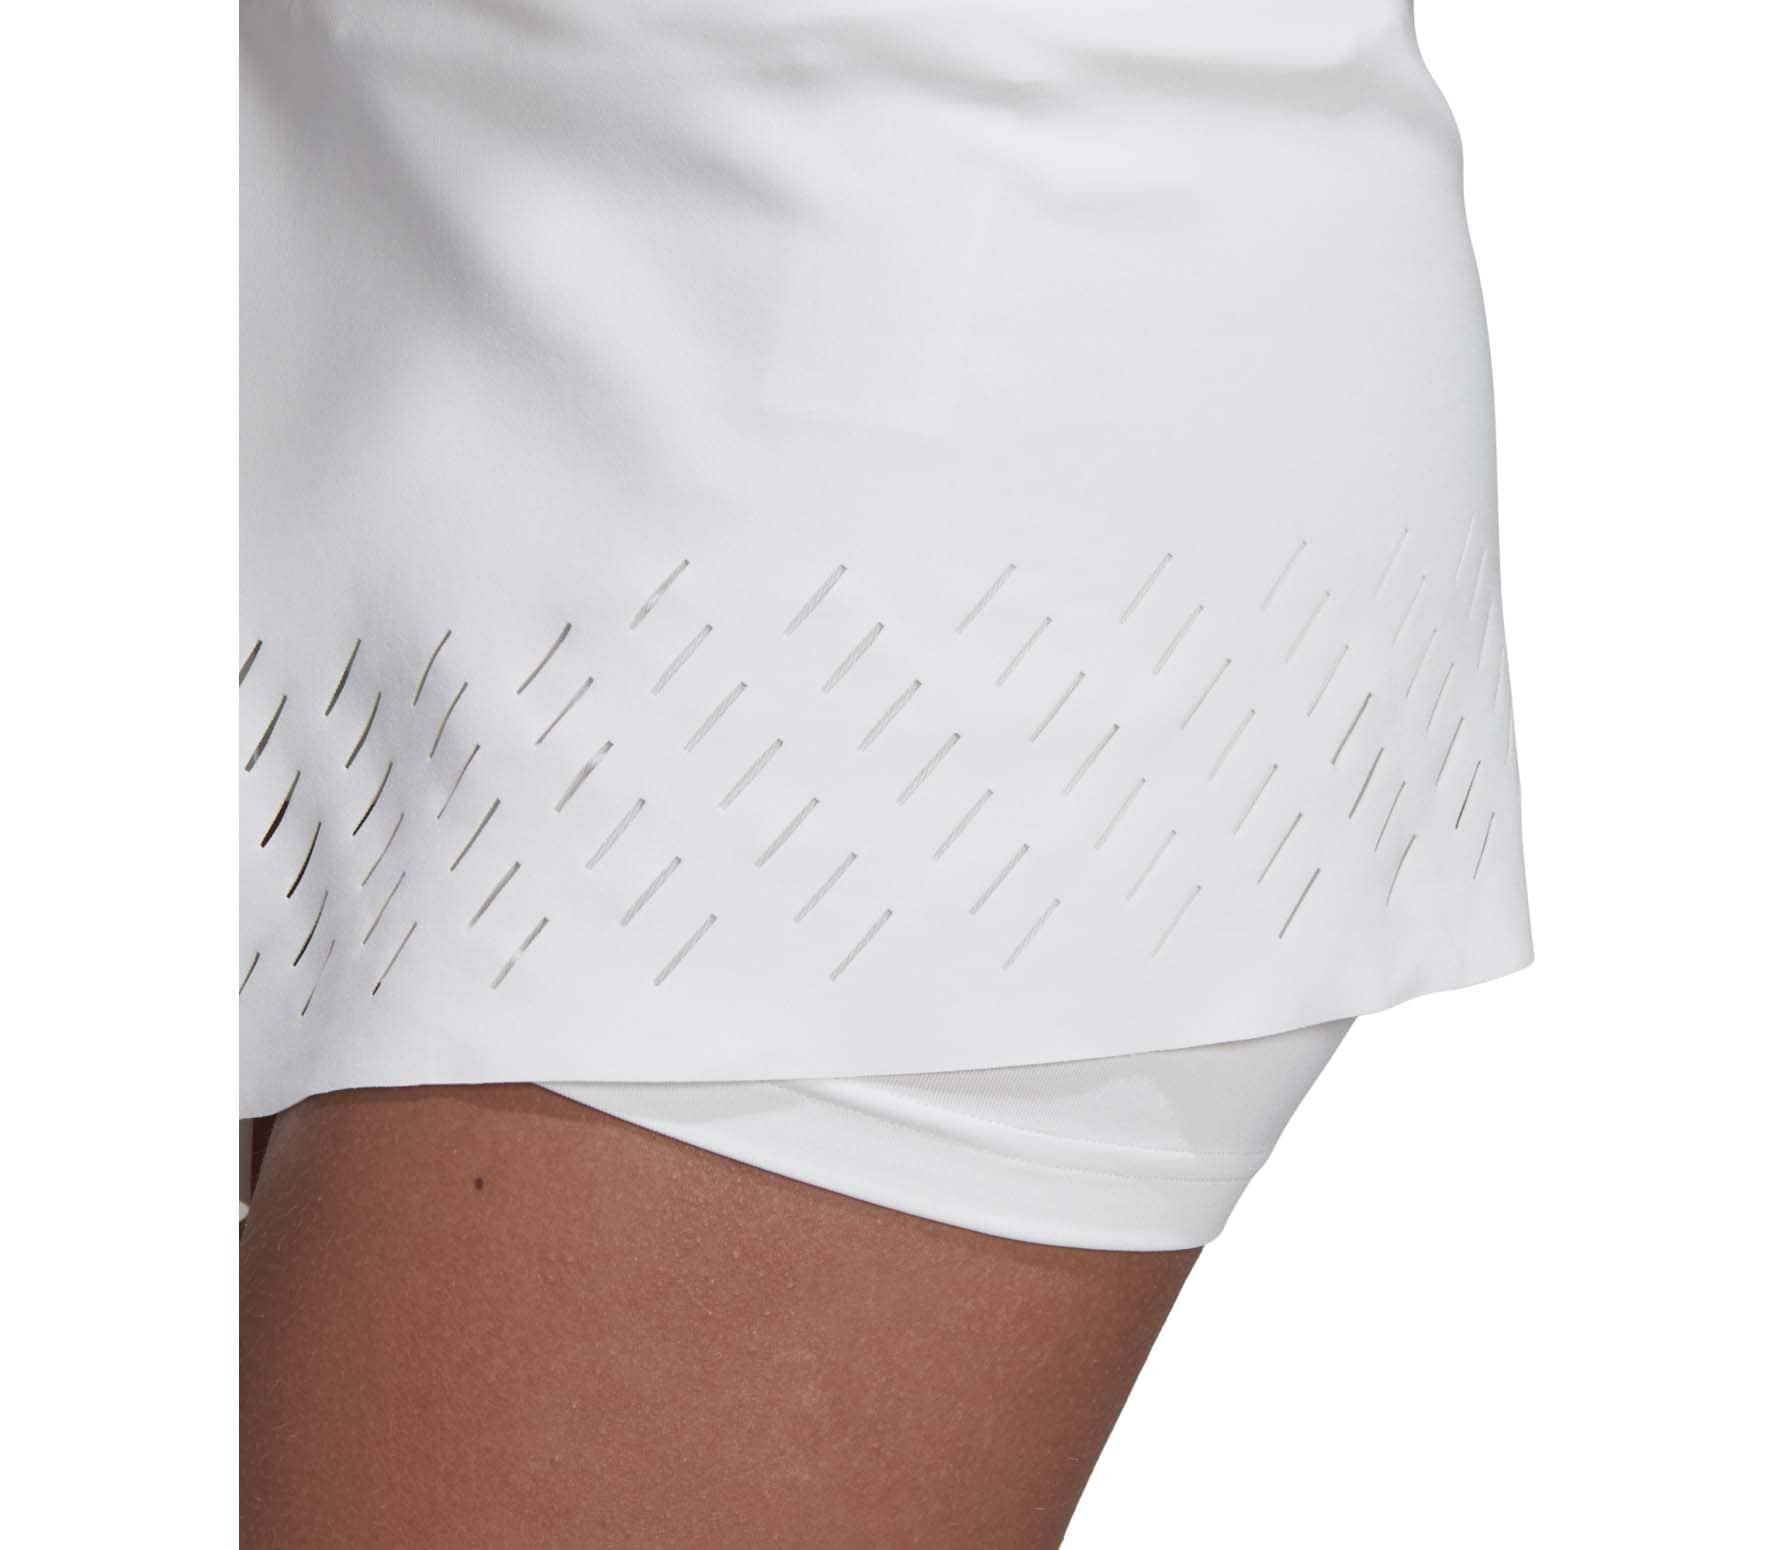 adidas by Stella McCartney Tennisrock Damen weiß